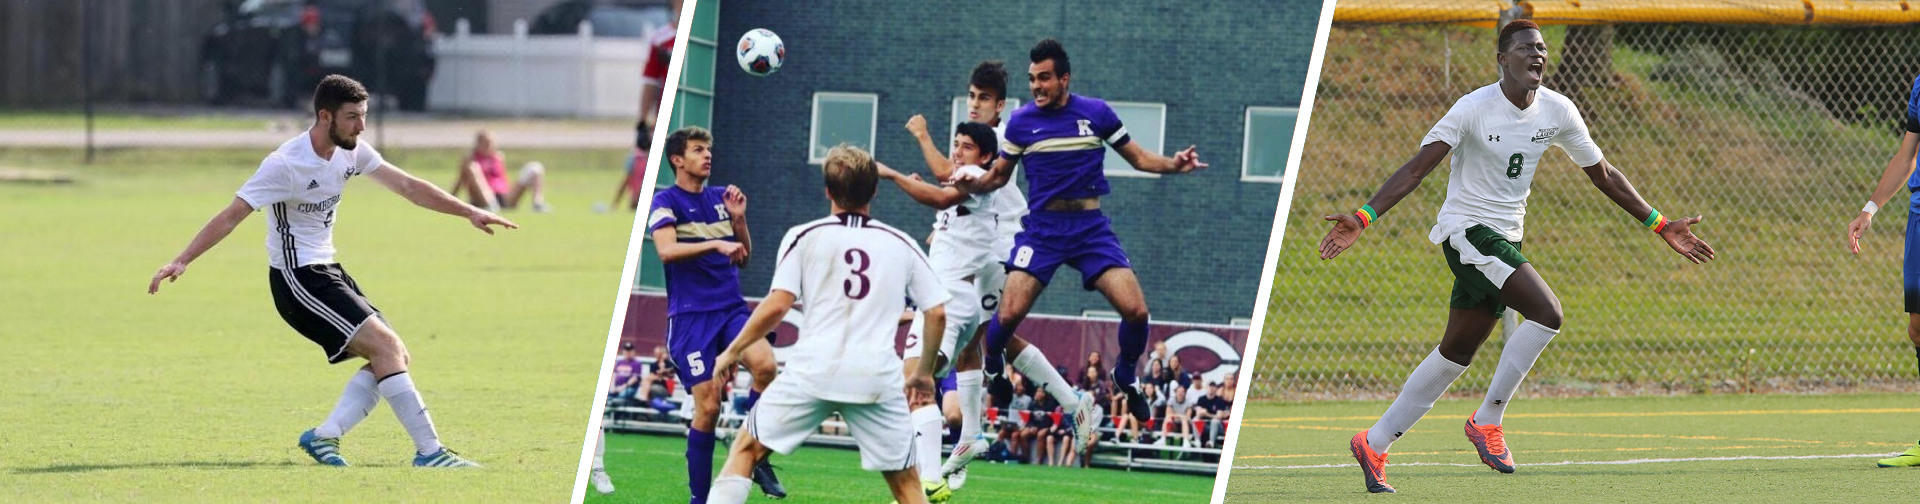 Update on the Fall 2017 College Soccer Season